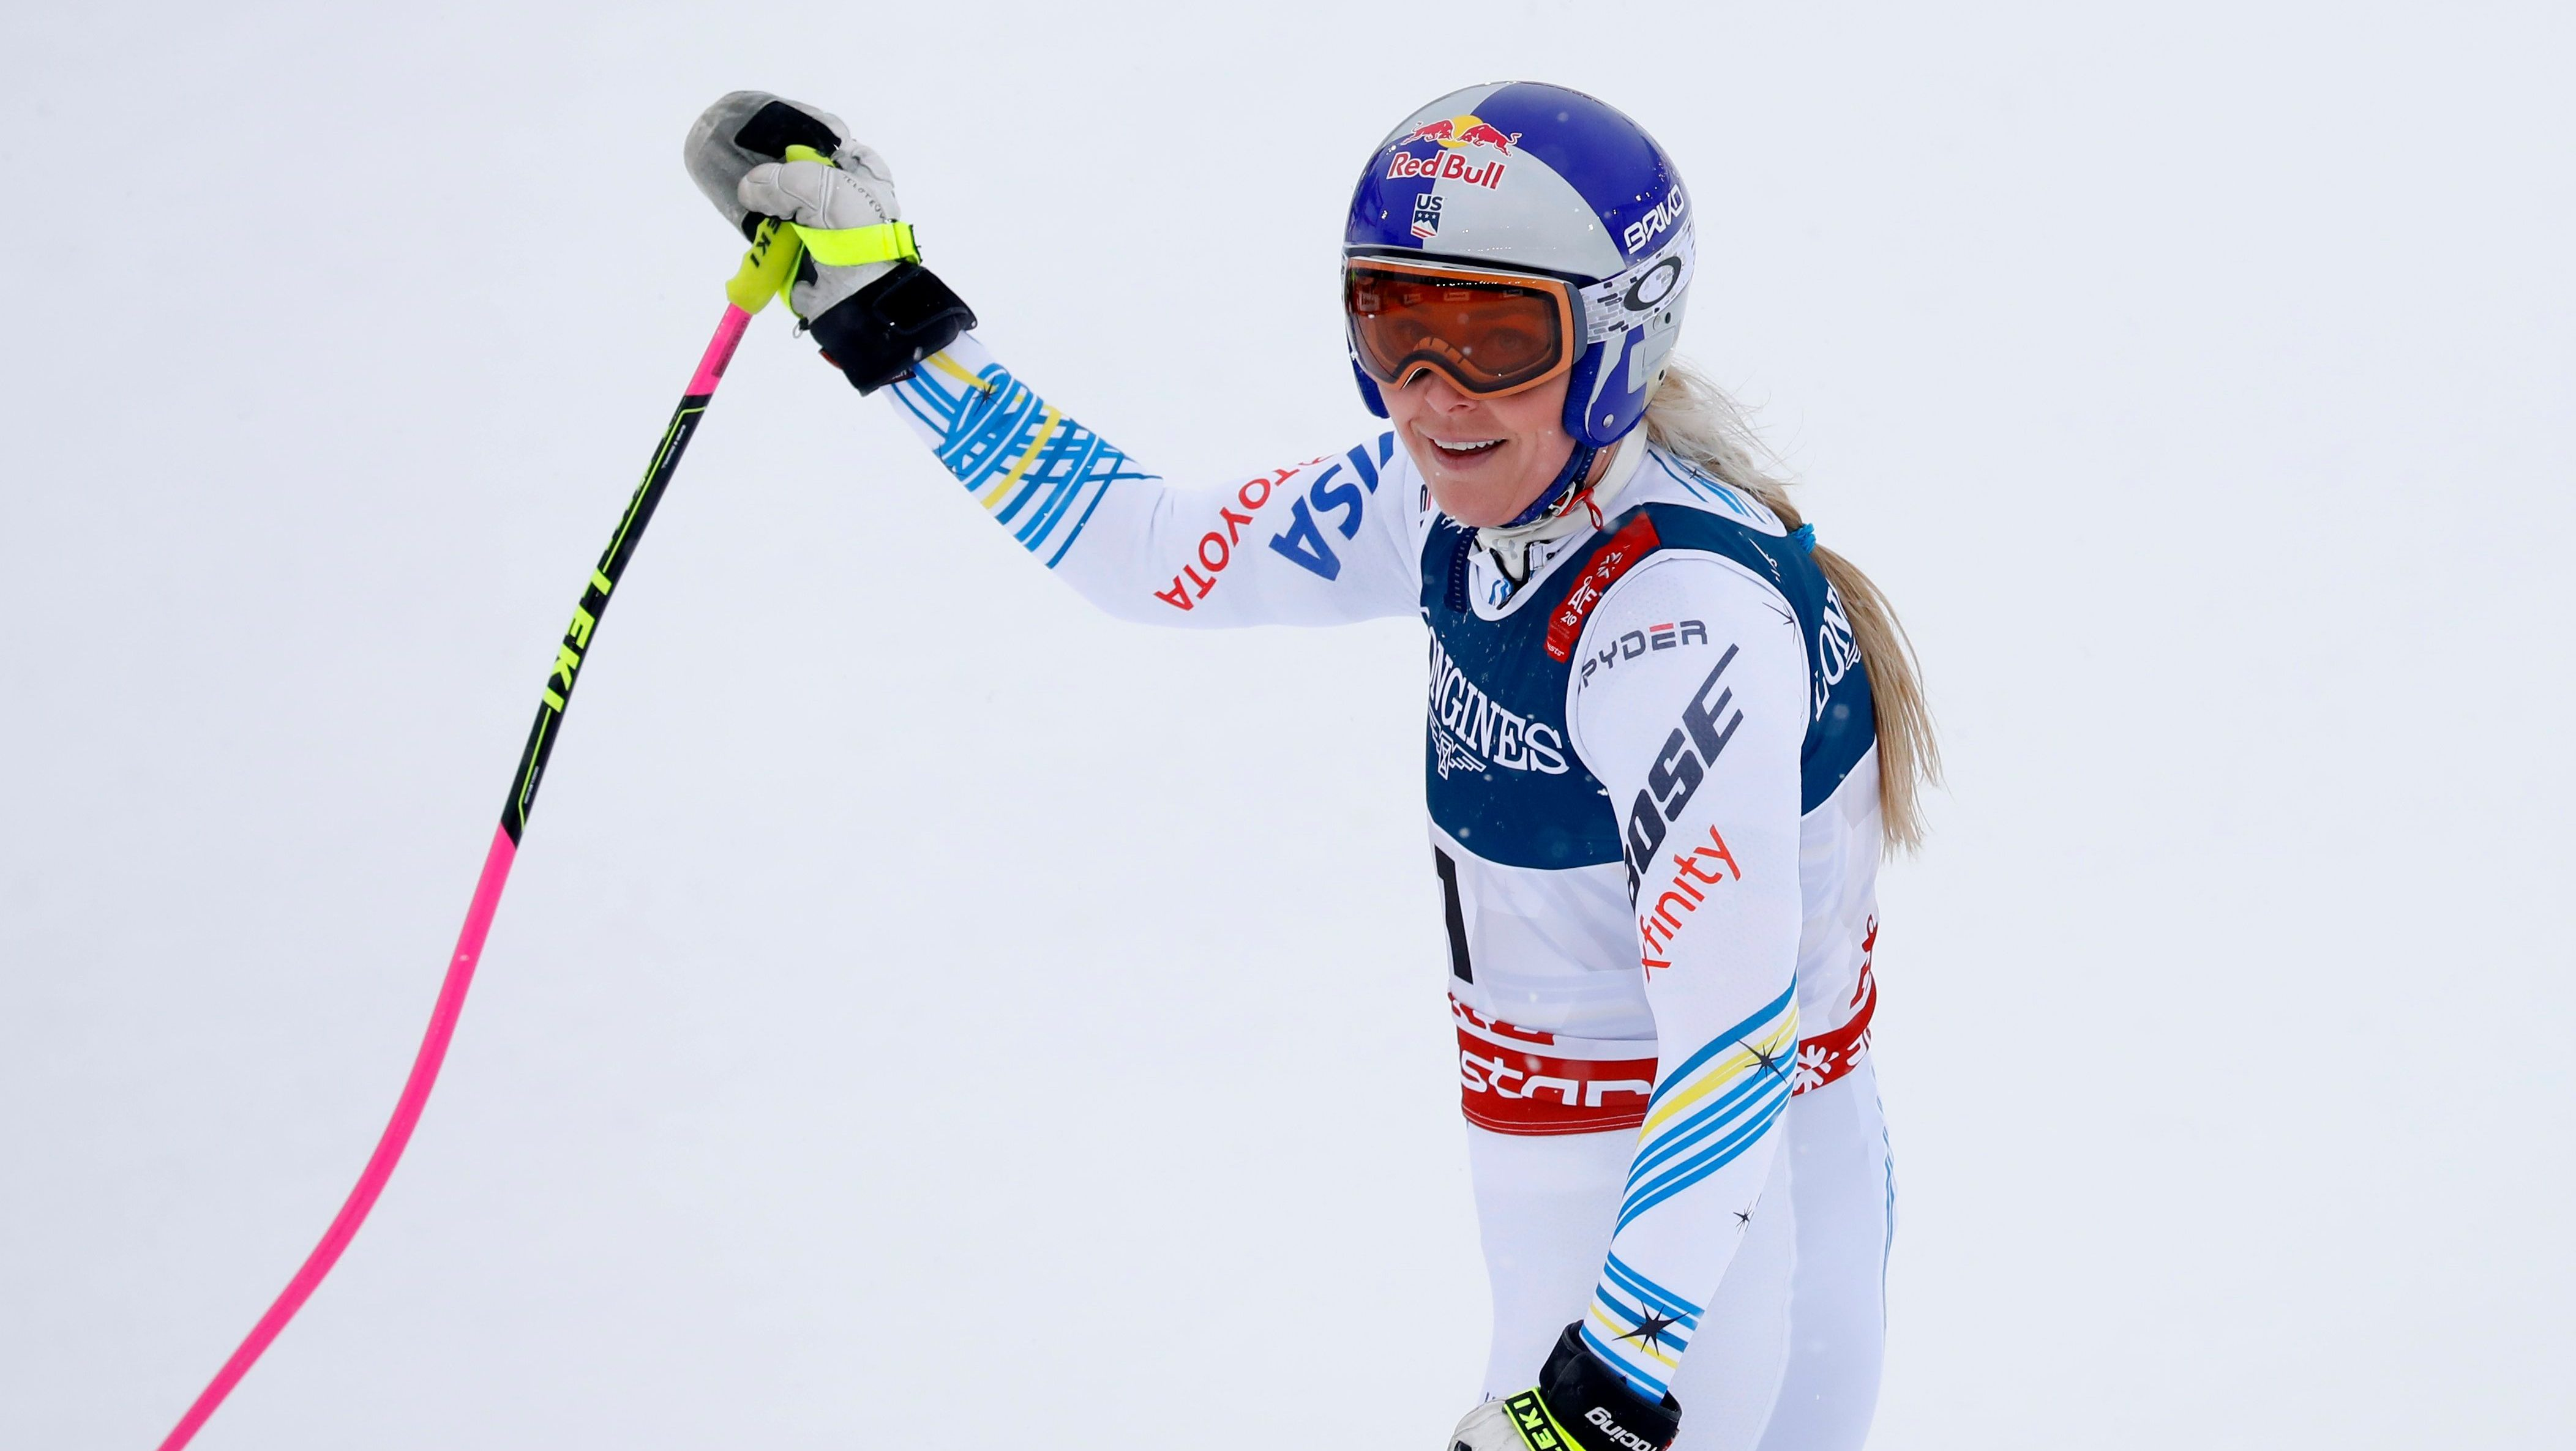 Alpine Skiing - FIS Alpine World Ski Championships - Women's Alpine Combined - Downhill - Are, Sweden - February 8, 2019 - Lindsey Vonn of the U.S. reacts after finishing the race.